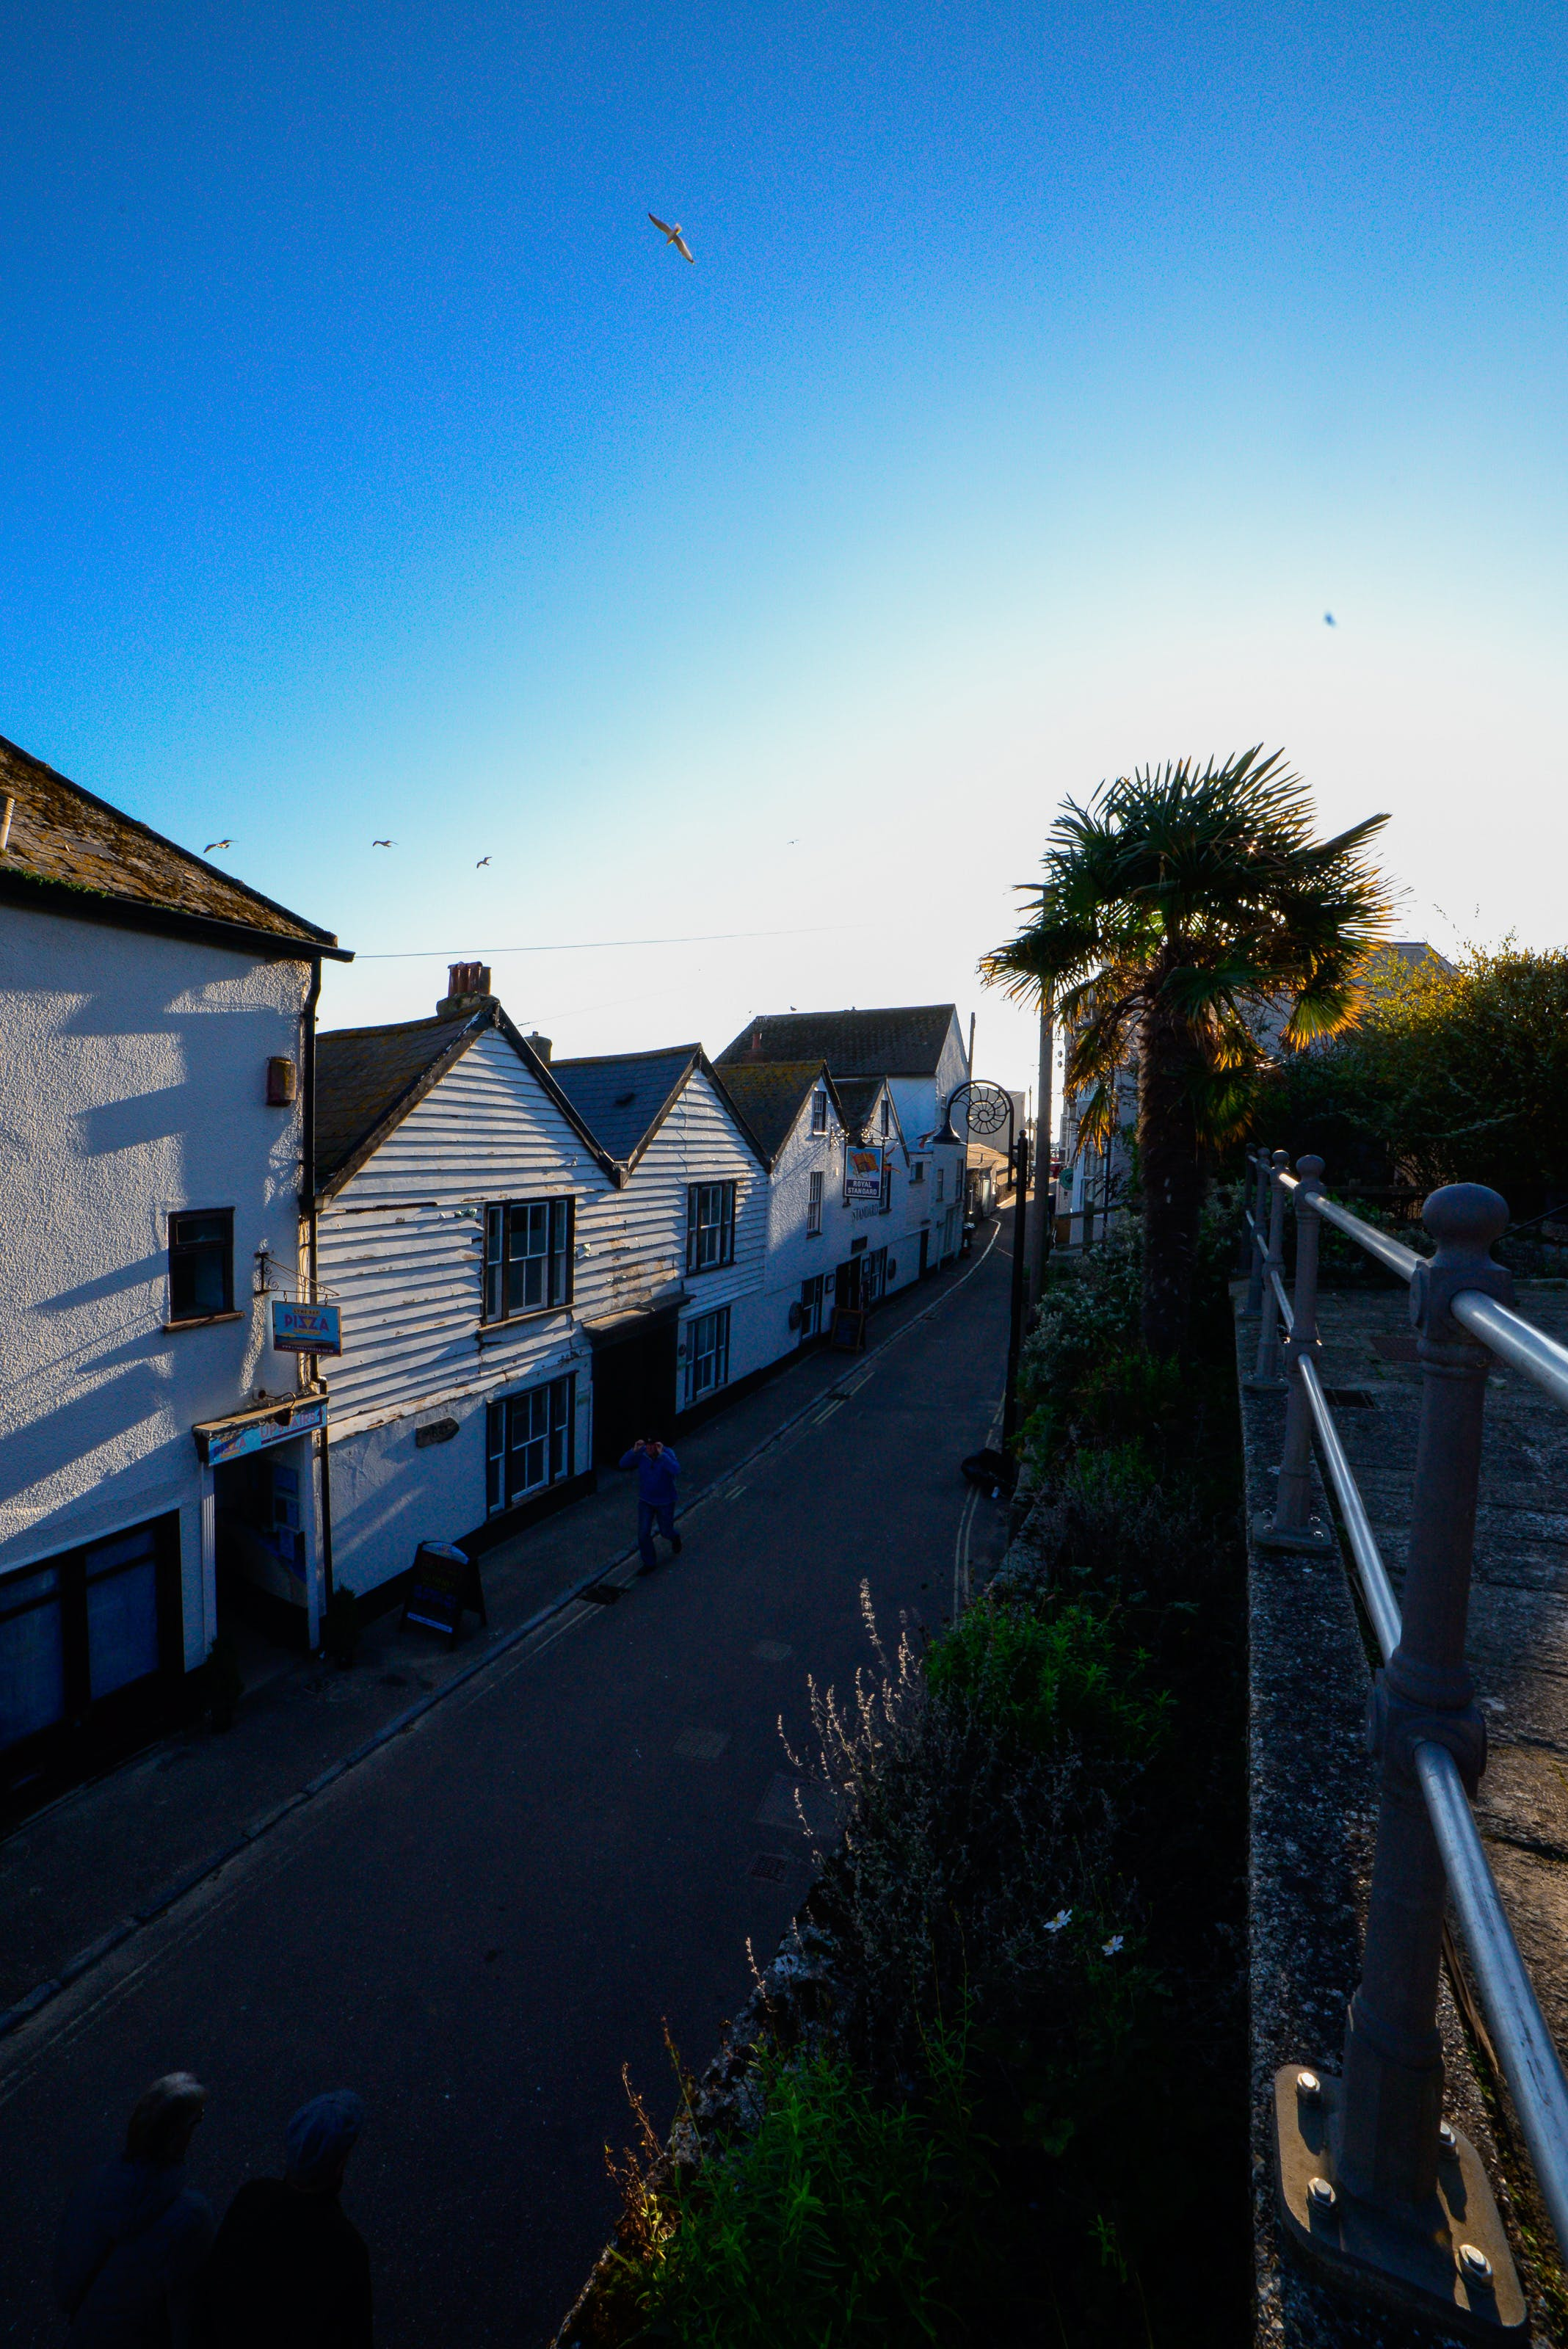 Free stock photo of blue sky, colonial house, footpath, houses